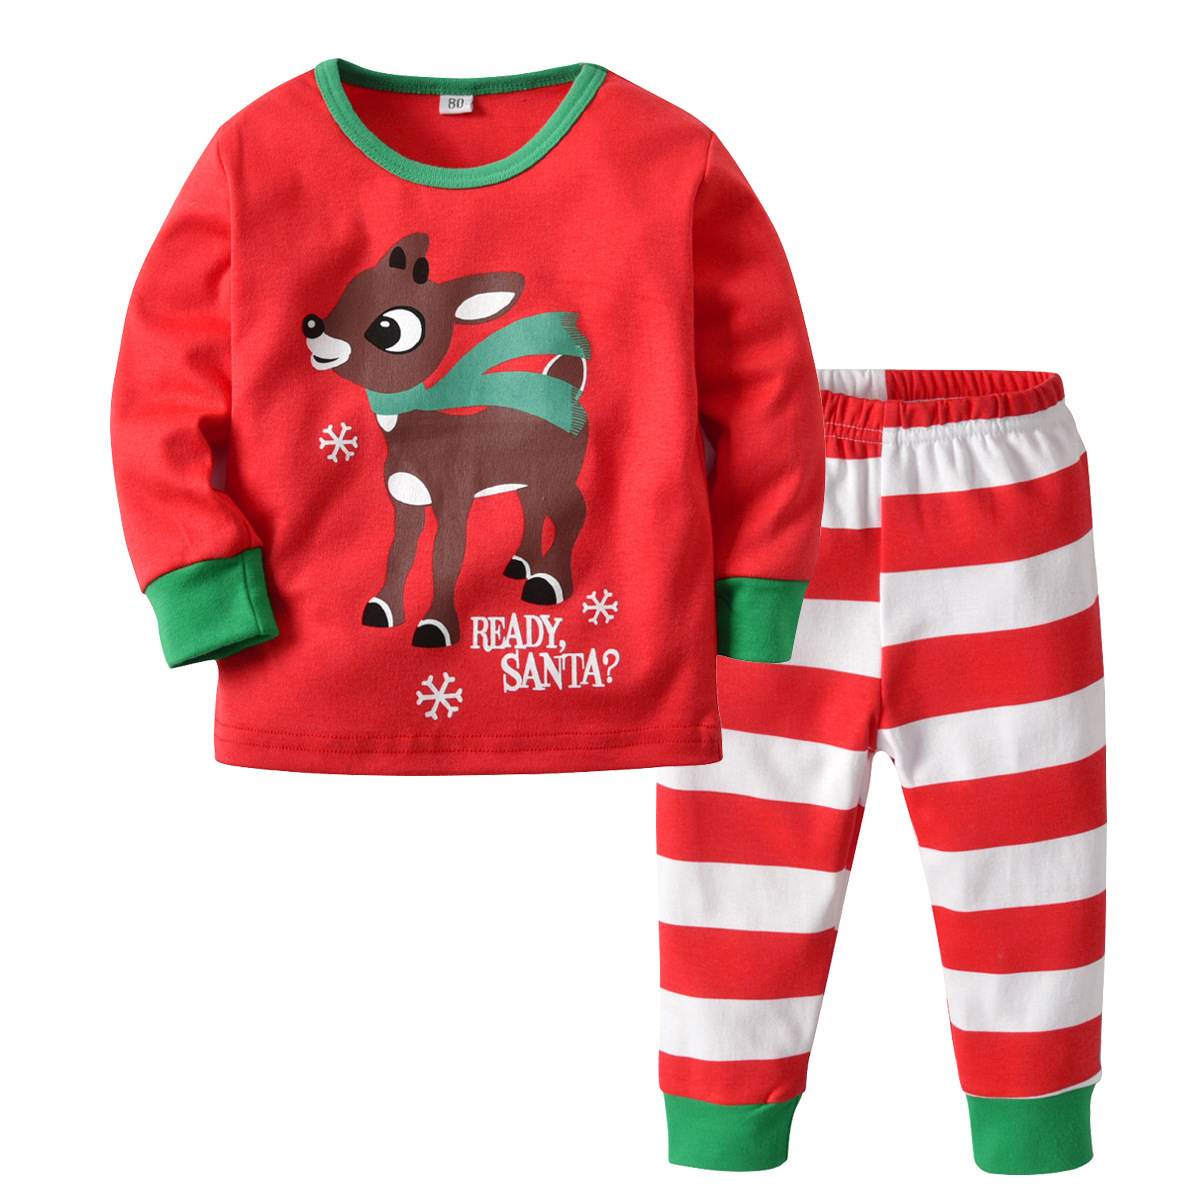 Unisex Baby Kids Boys Girls Christmas Tops+Pants Xmas Outfits Pajamas Clothes